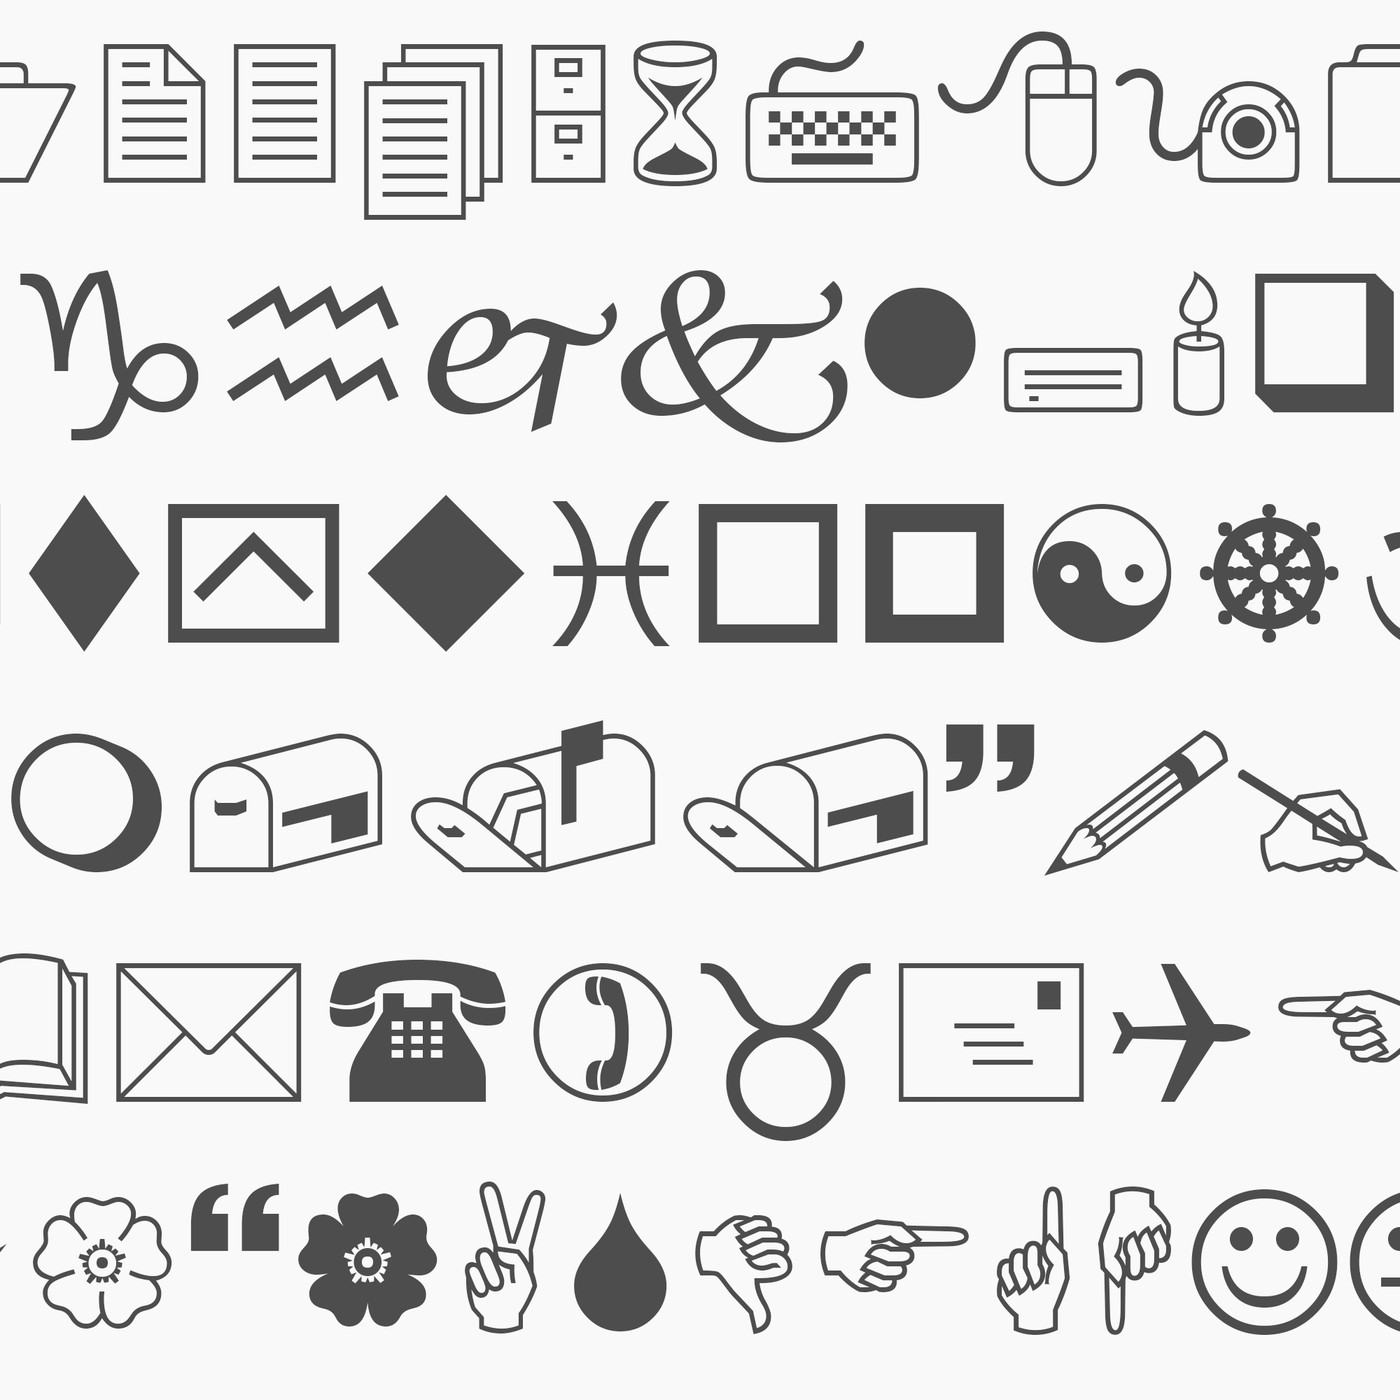 why the wingdings font